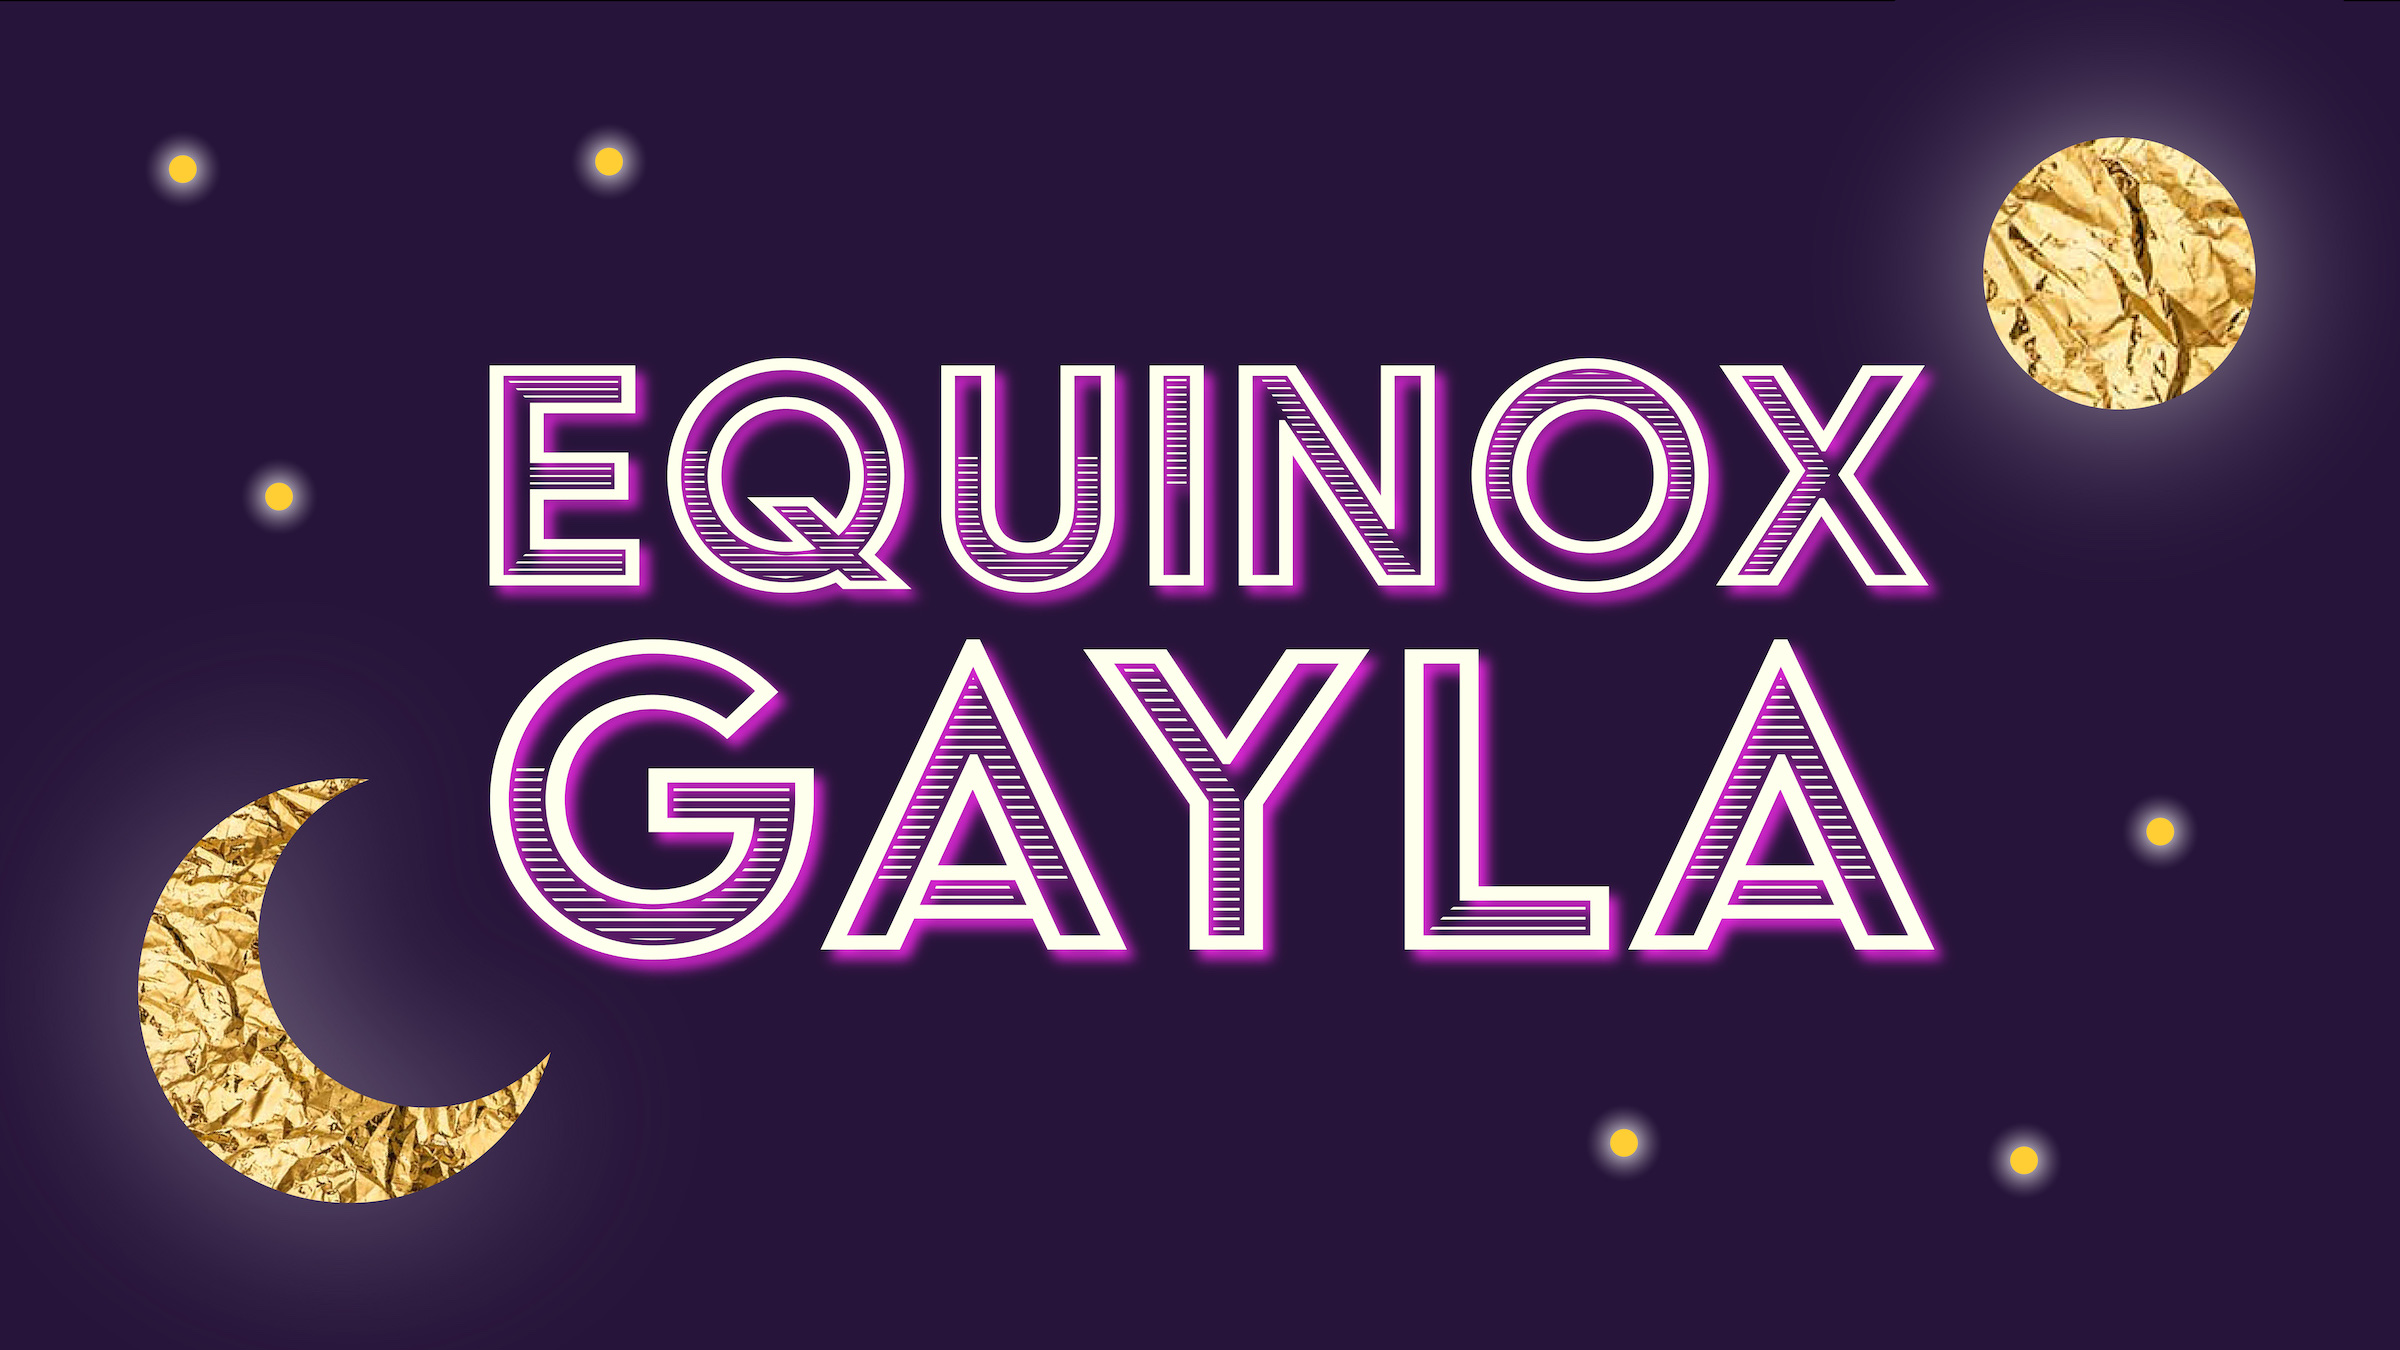 Image for Equinox Gayla event